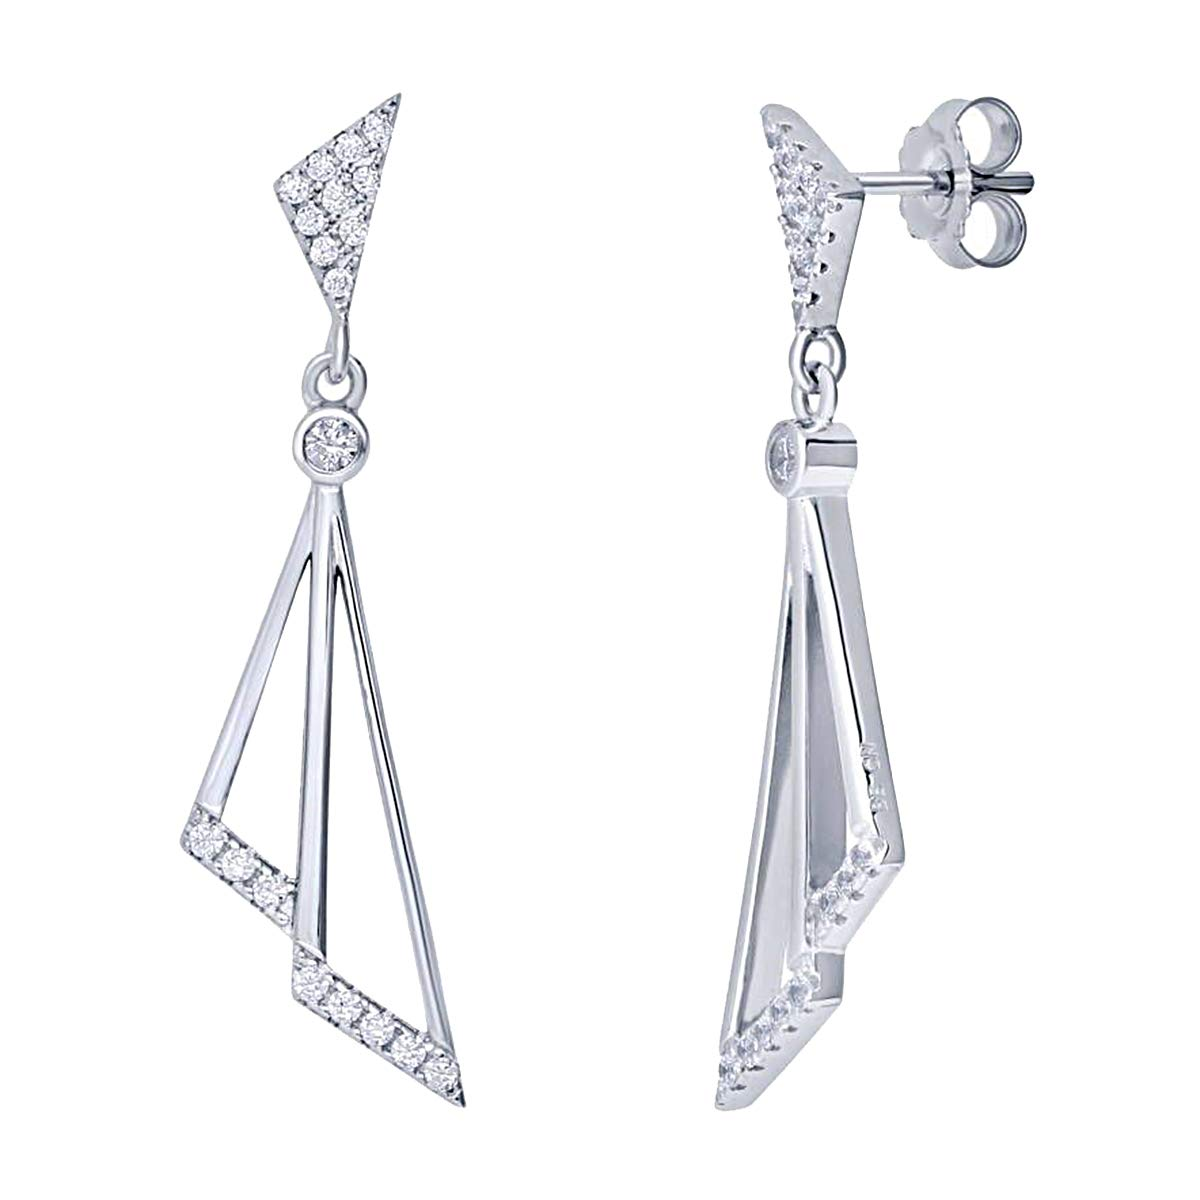 0.50 Ct Round Cut Simulated Diamond Triangle Dangle Earrings In 14K White Gold Plated